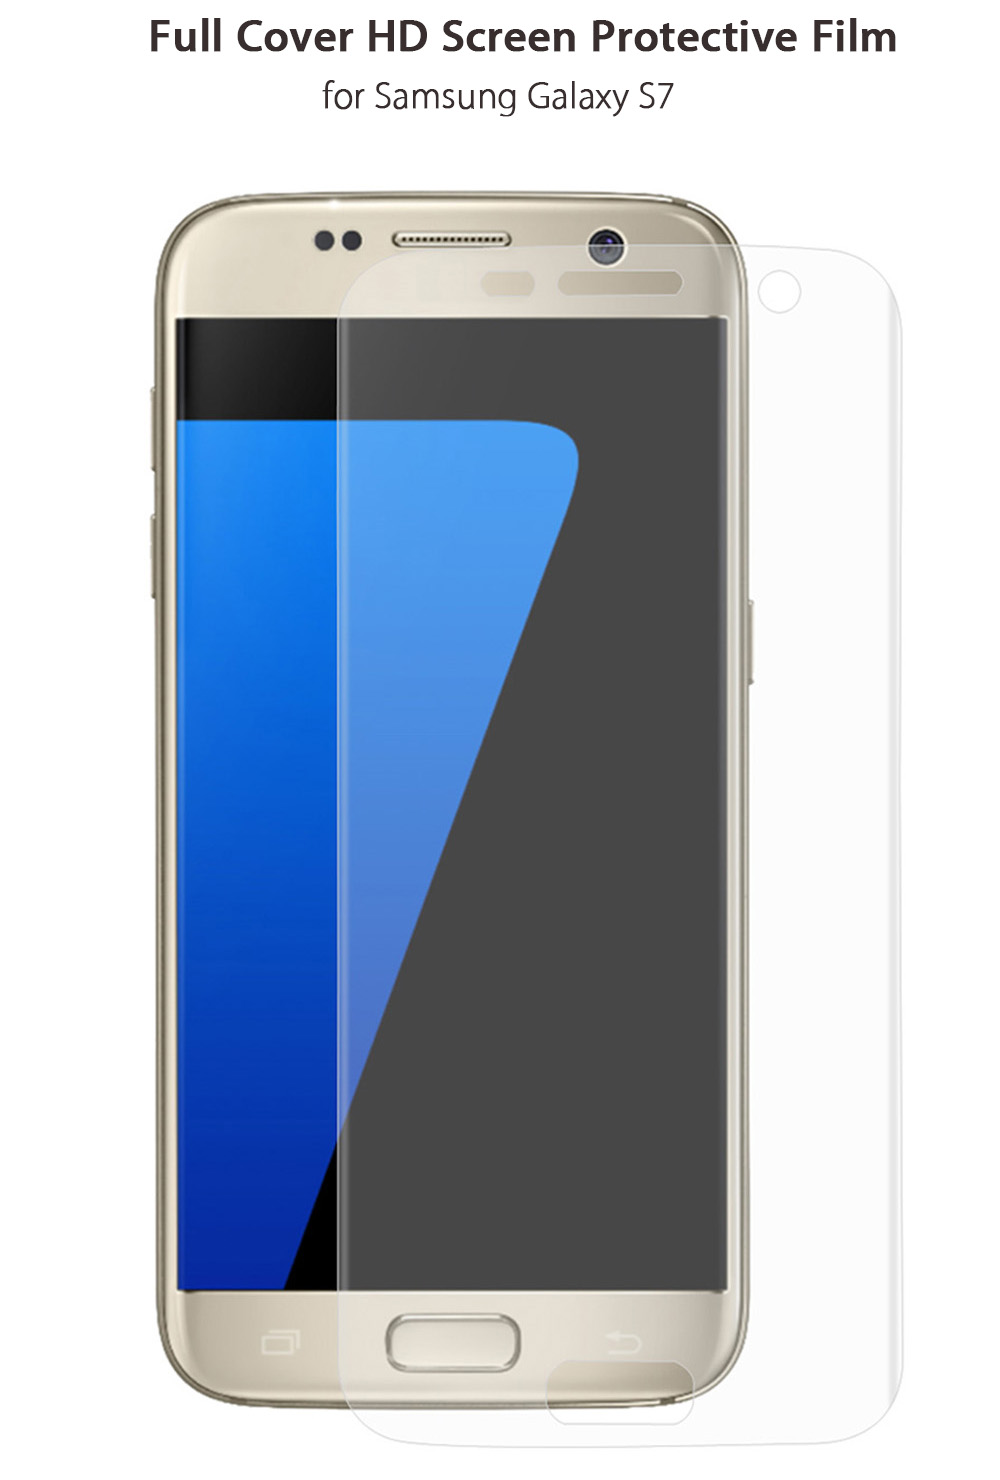 Hat - Prince Screen Protector for Samsung Galaxy S7 Clear HD Full Cover Film